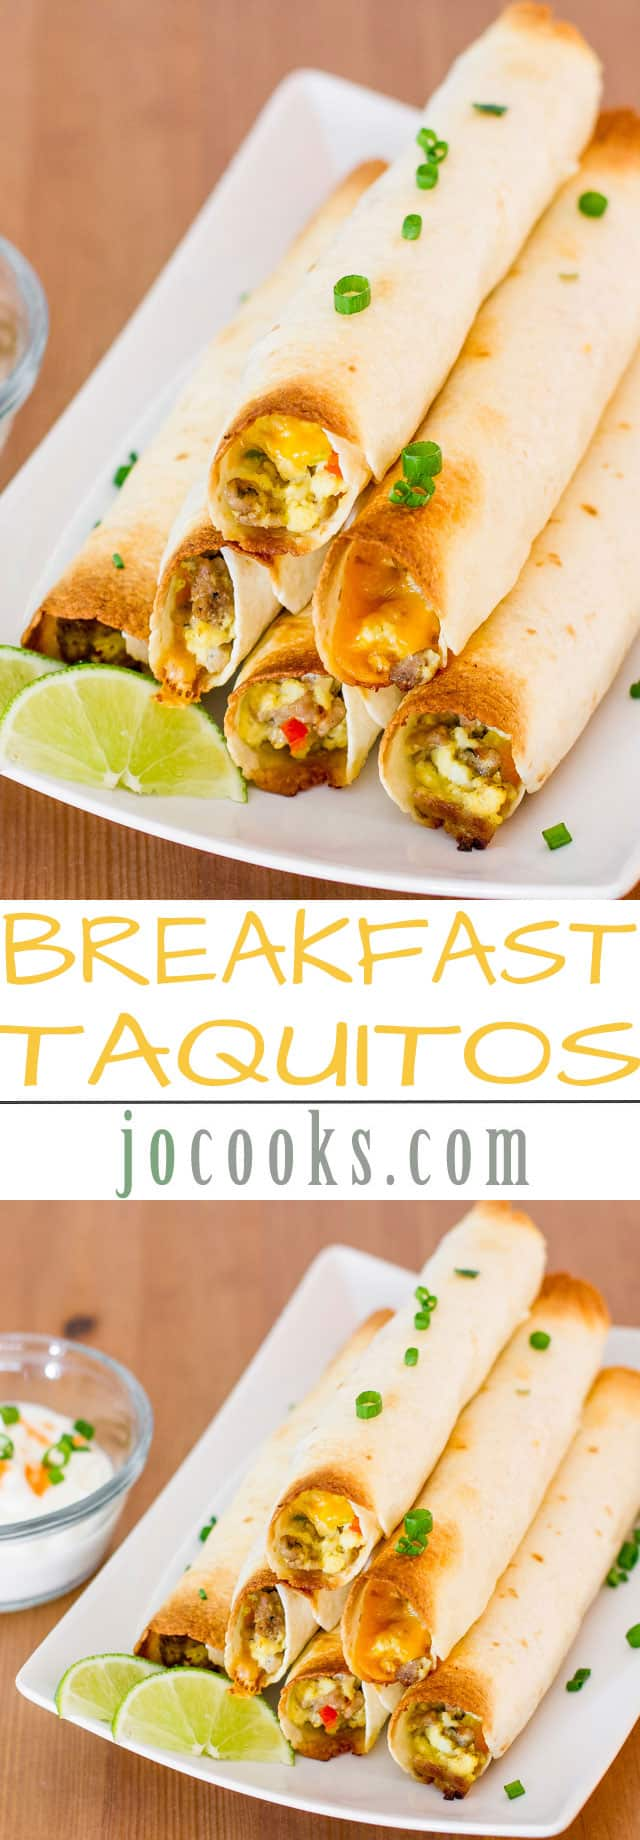 breakfast-taquitos-collage